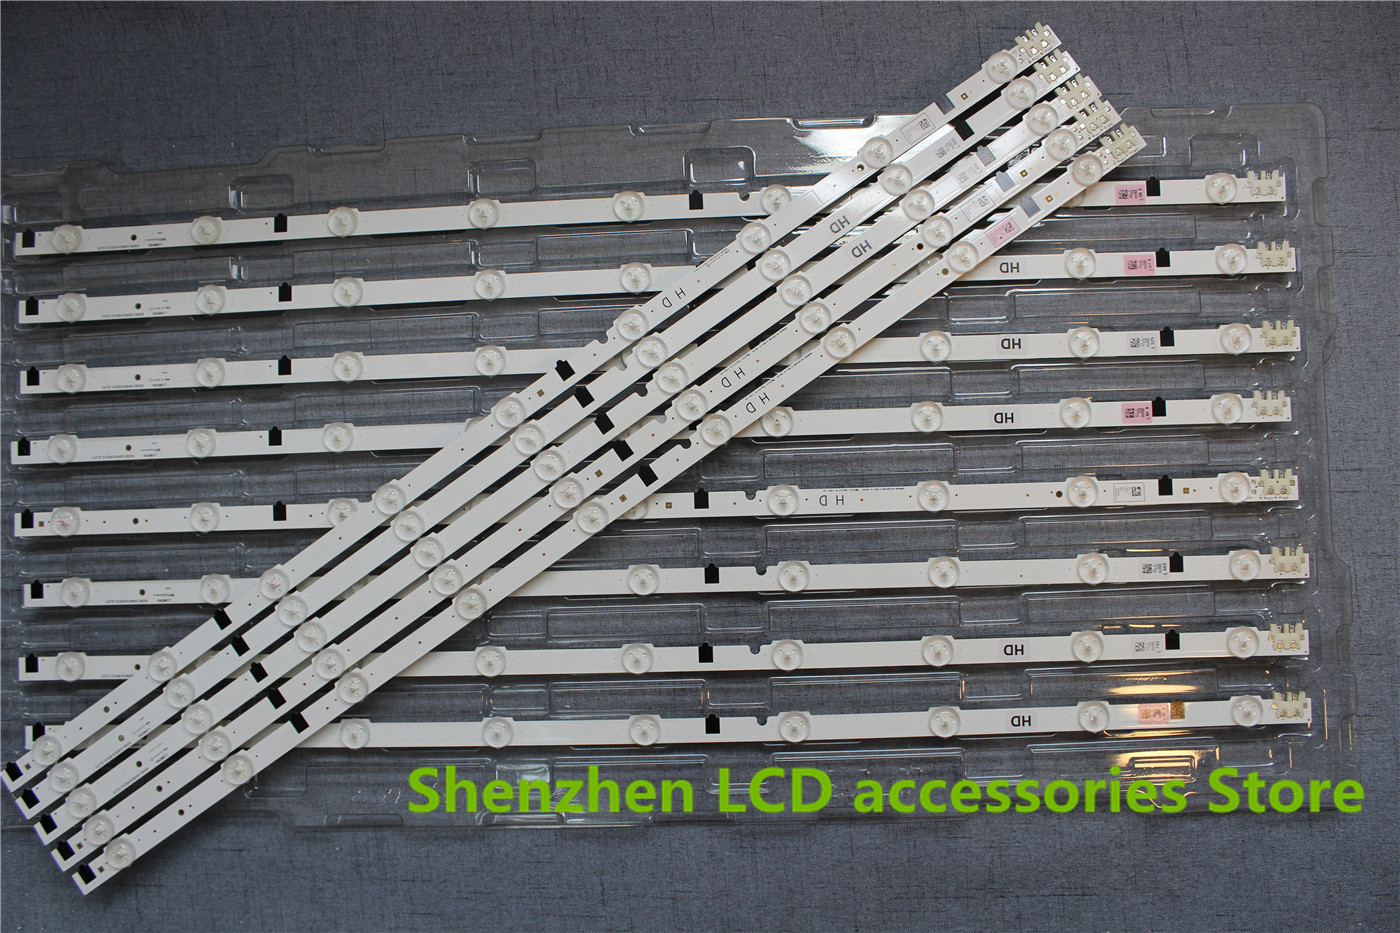 5Pieces/lot  For Samsung D2GE-320SC0-R3 2013SVS 32H UE32F4000 UE32F4000AW UE32F5300  100%NEW  650MM